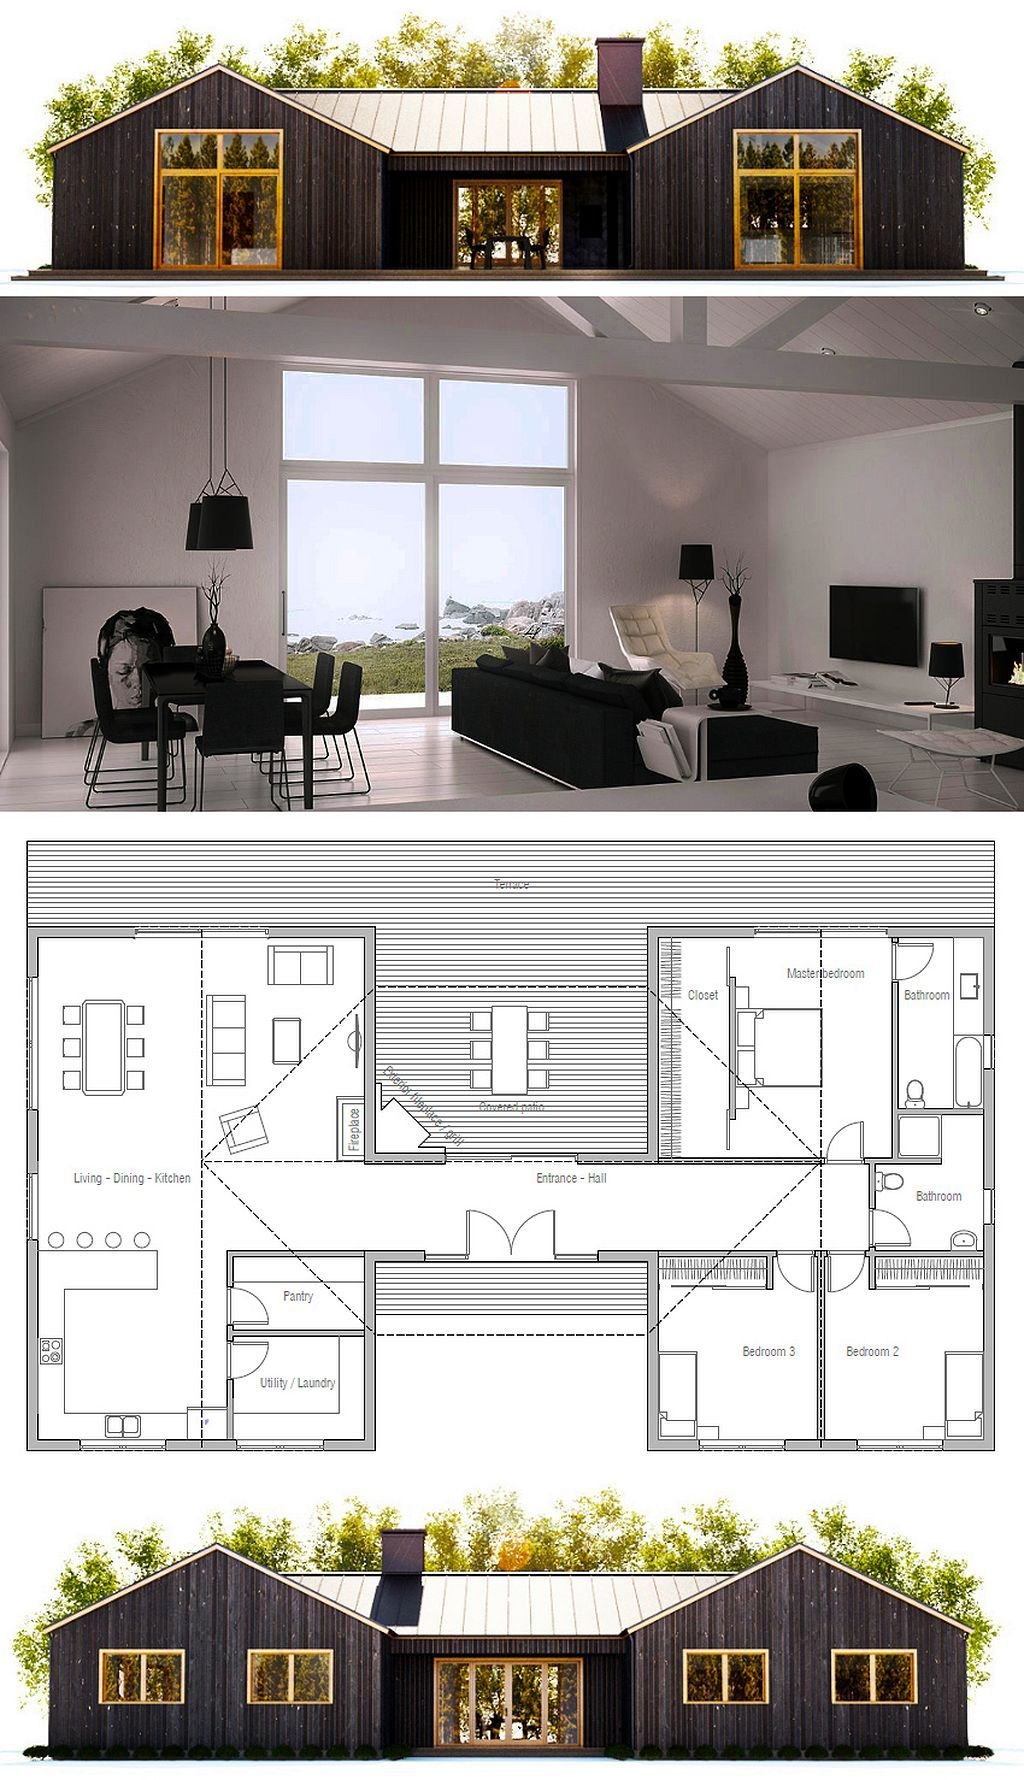 Shipping Container House Plans Ideas 13 | Container homes/Ideas ...